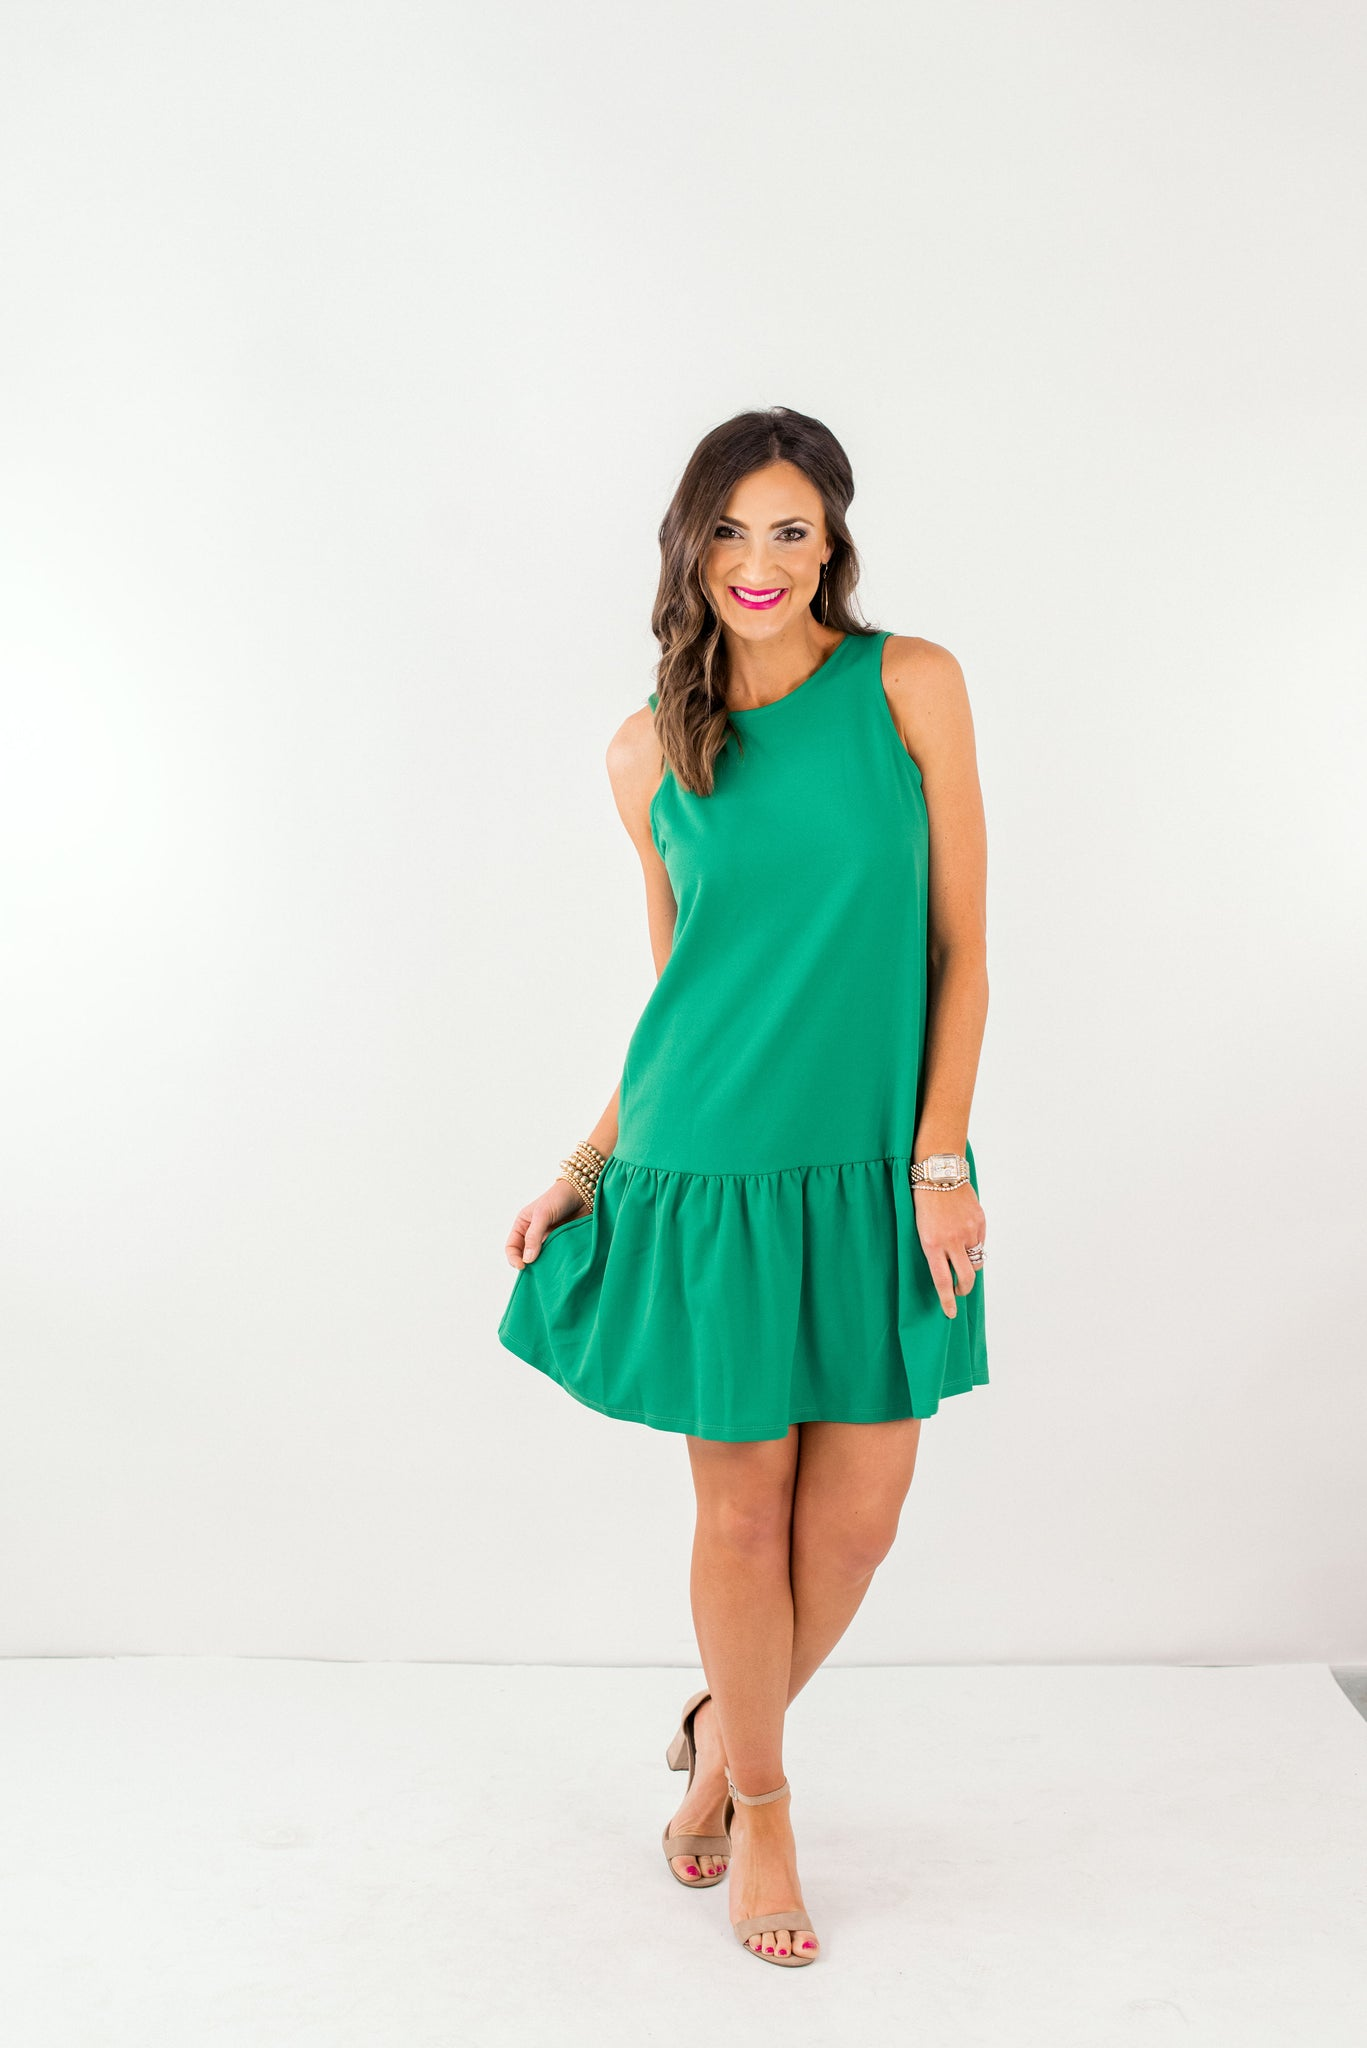 Kelly Green Cross Back Sleeveless Dress *FINAL SALE*